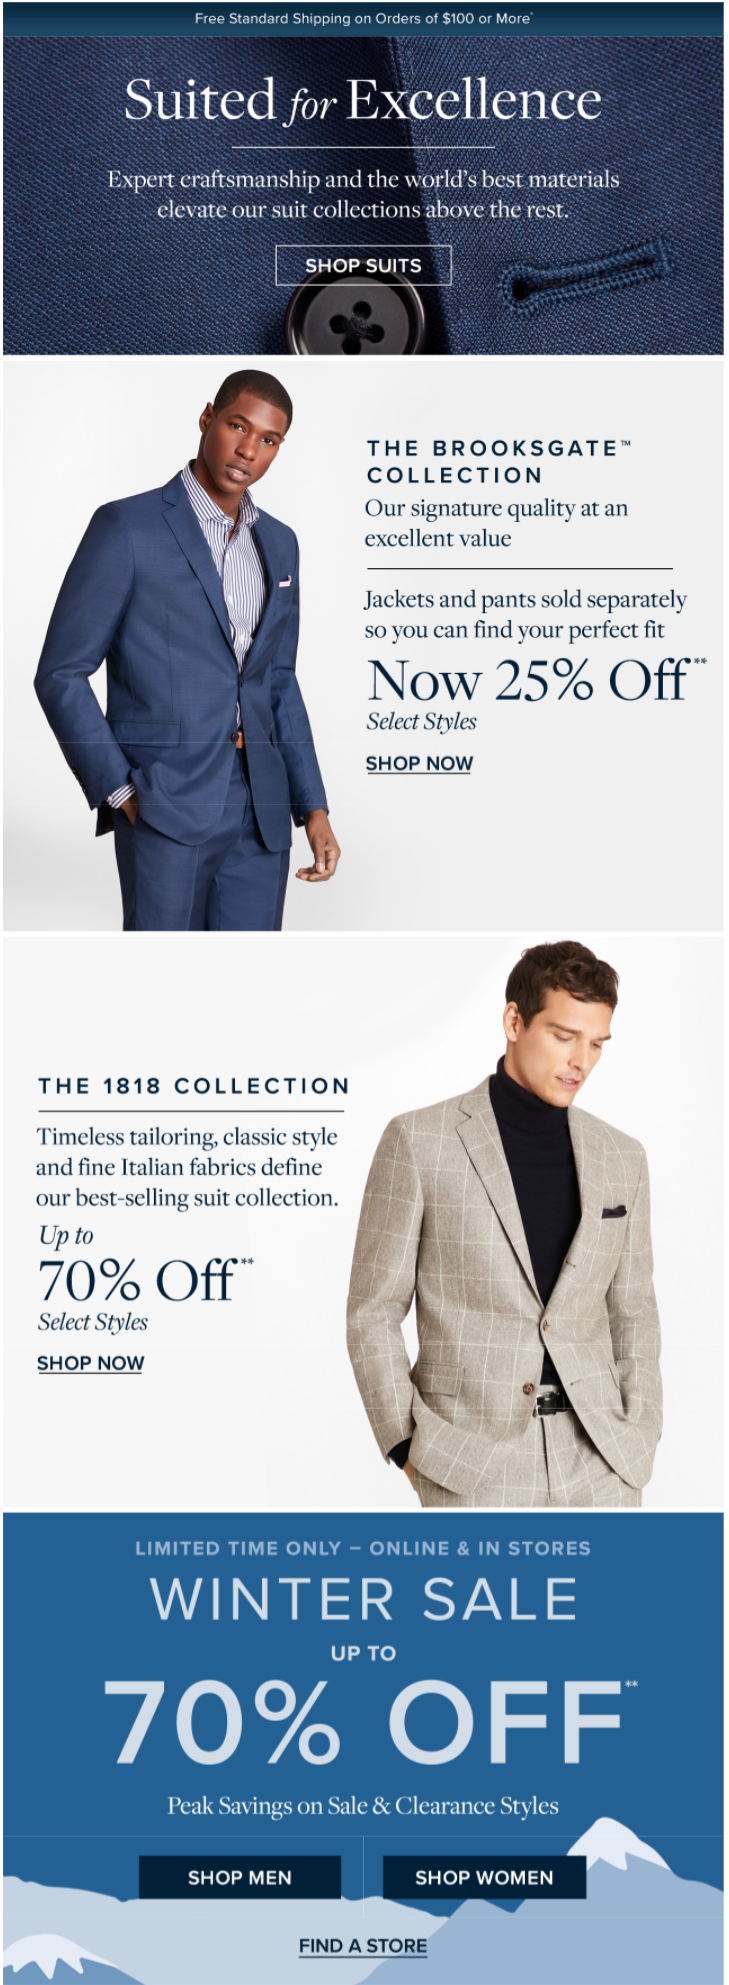 BrooksBrothers-suit-your-style-suits-up-to-70-off